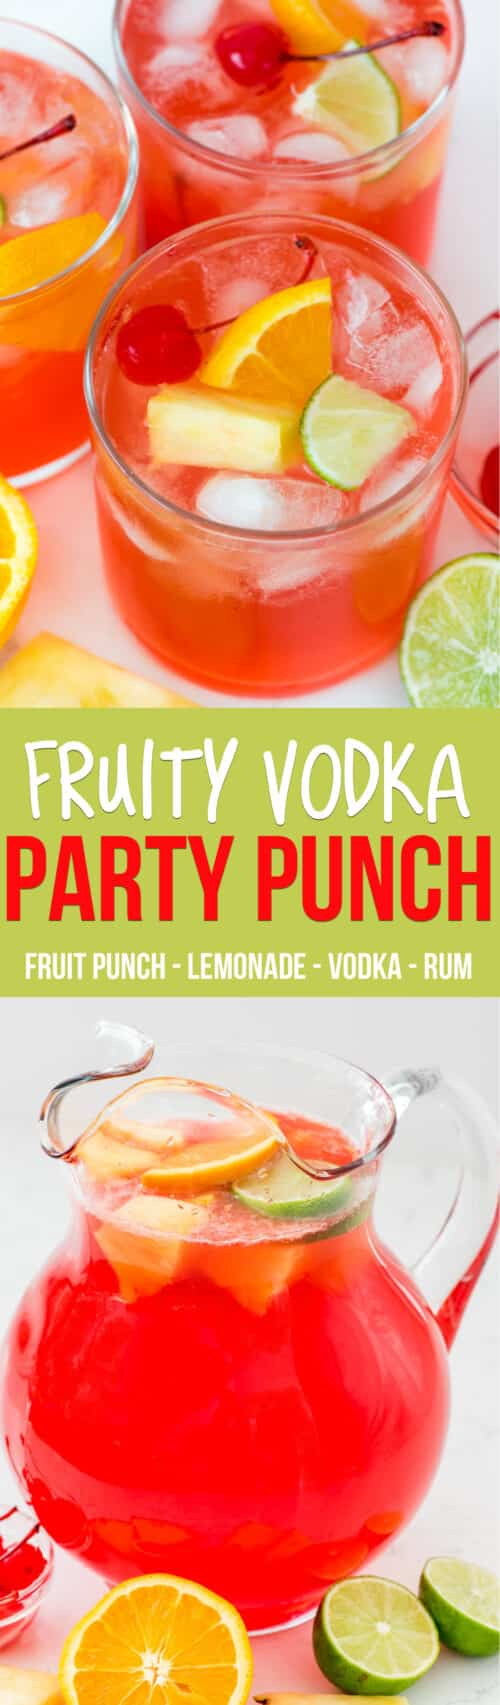 collage of party punch photos